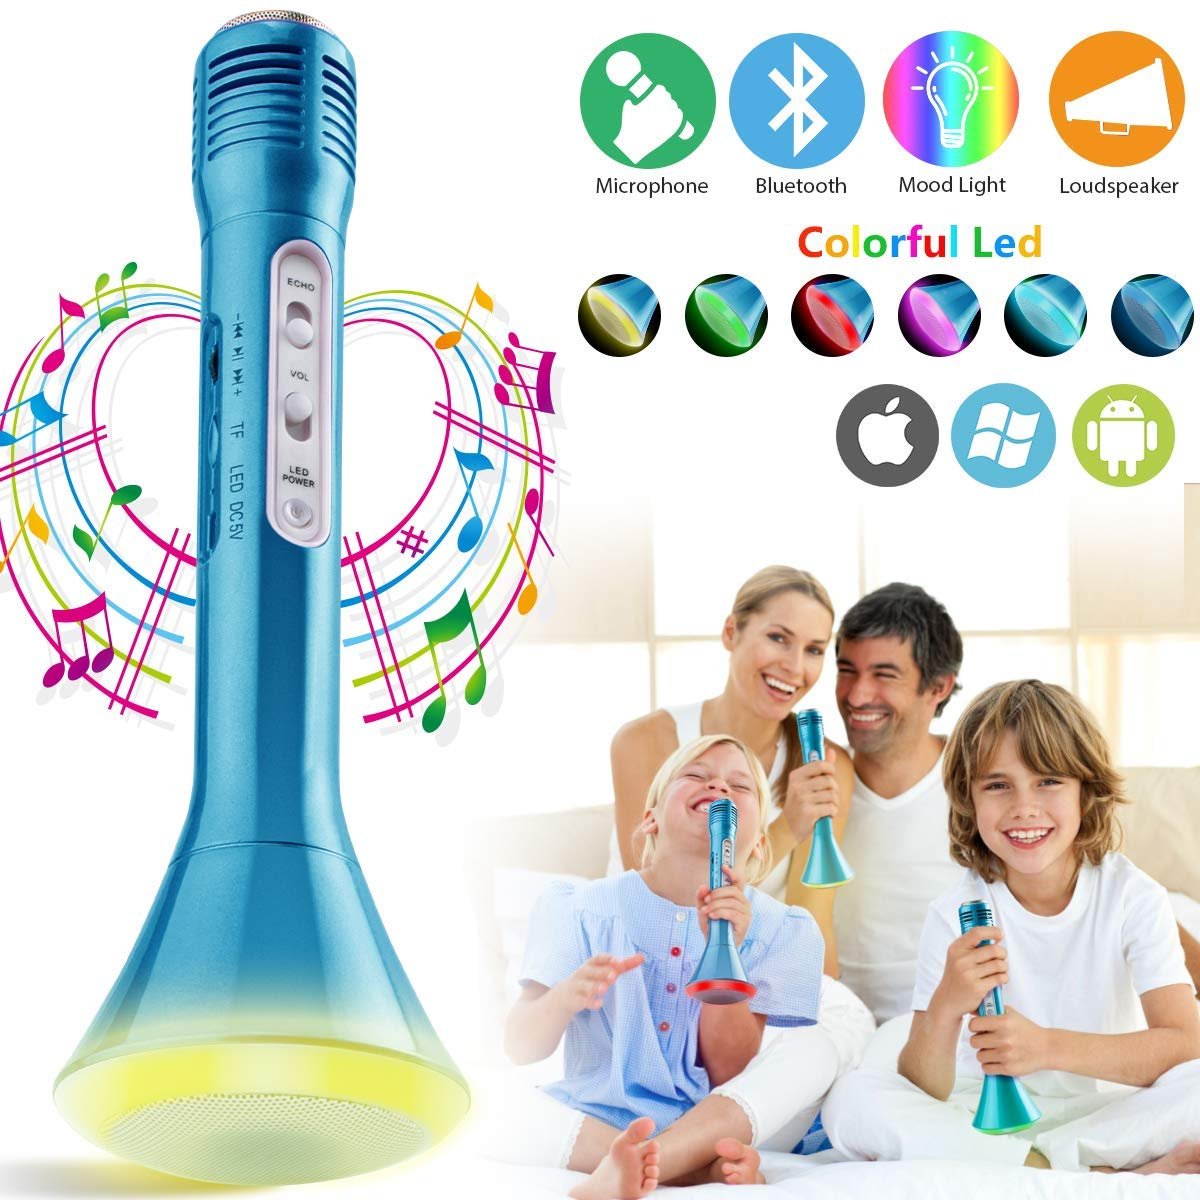 Wireless Kids Karaoke Microphone with Speaker, Portable Bluetooth Microphone Echo Child Karaoke Mic Machine for Kids Boys Girls Adult Singing Party Music Playing Support Android iOS Smartphone(Blue)